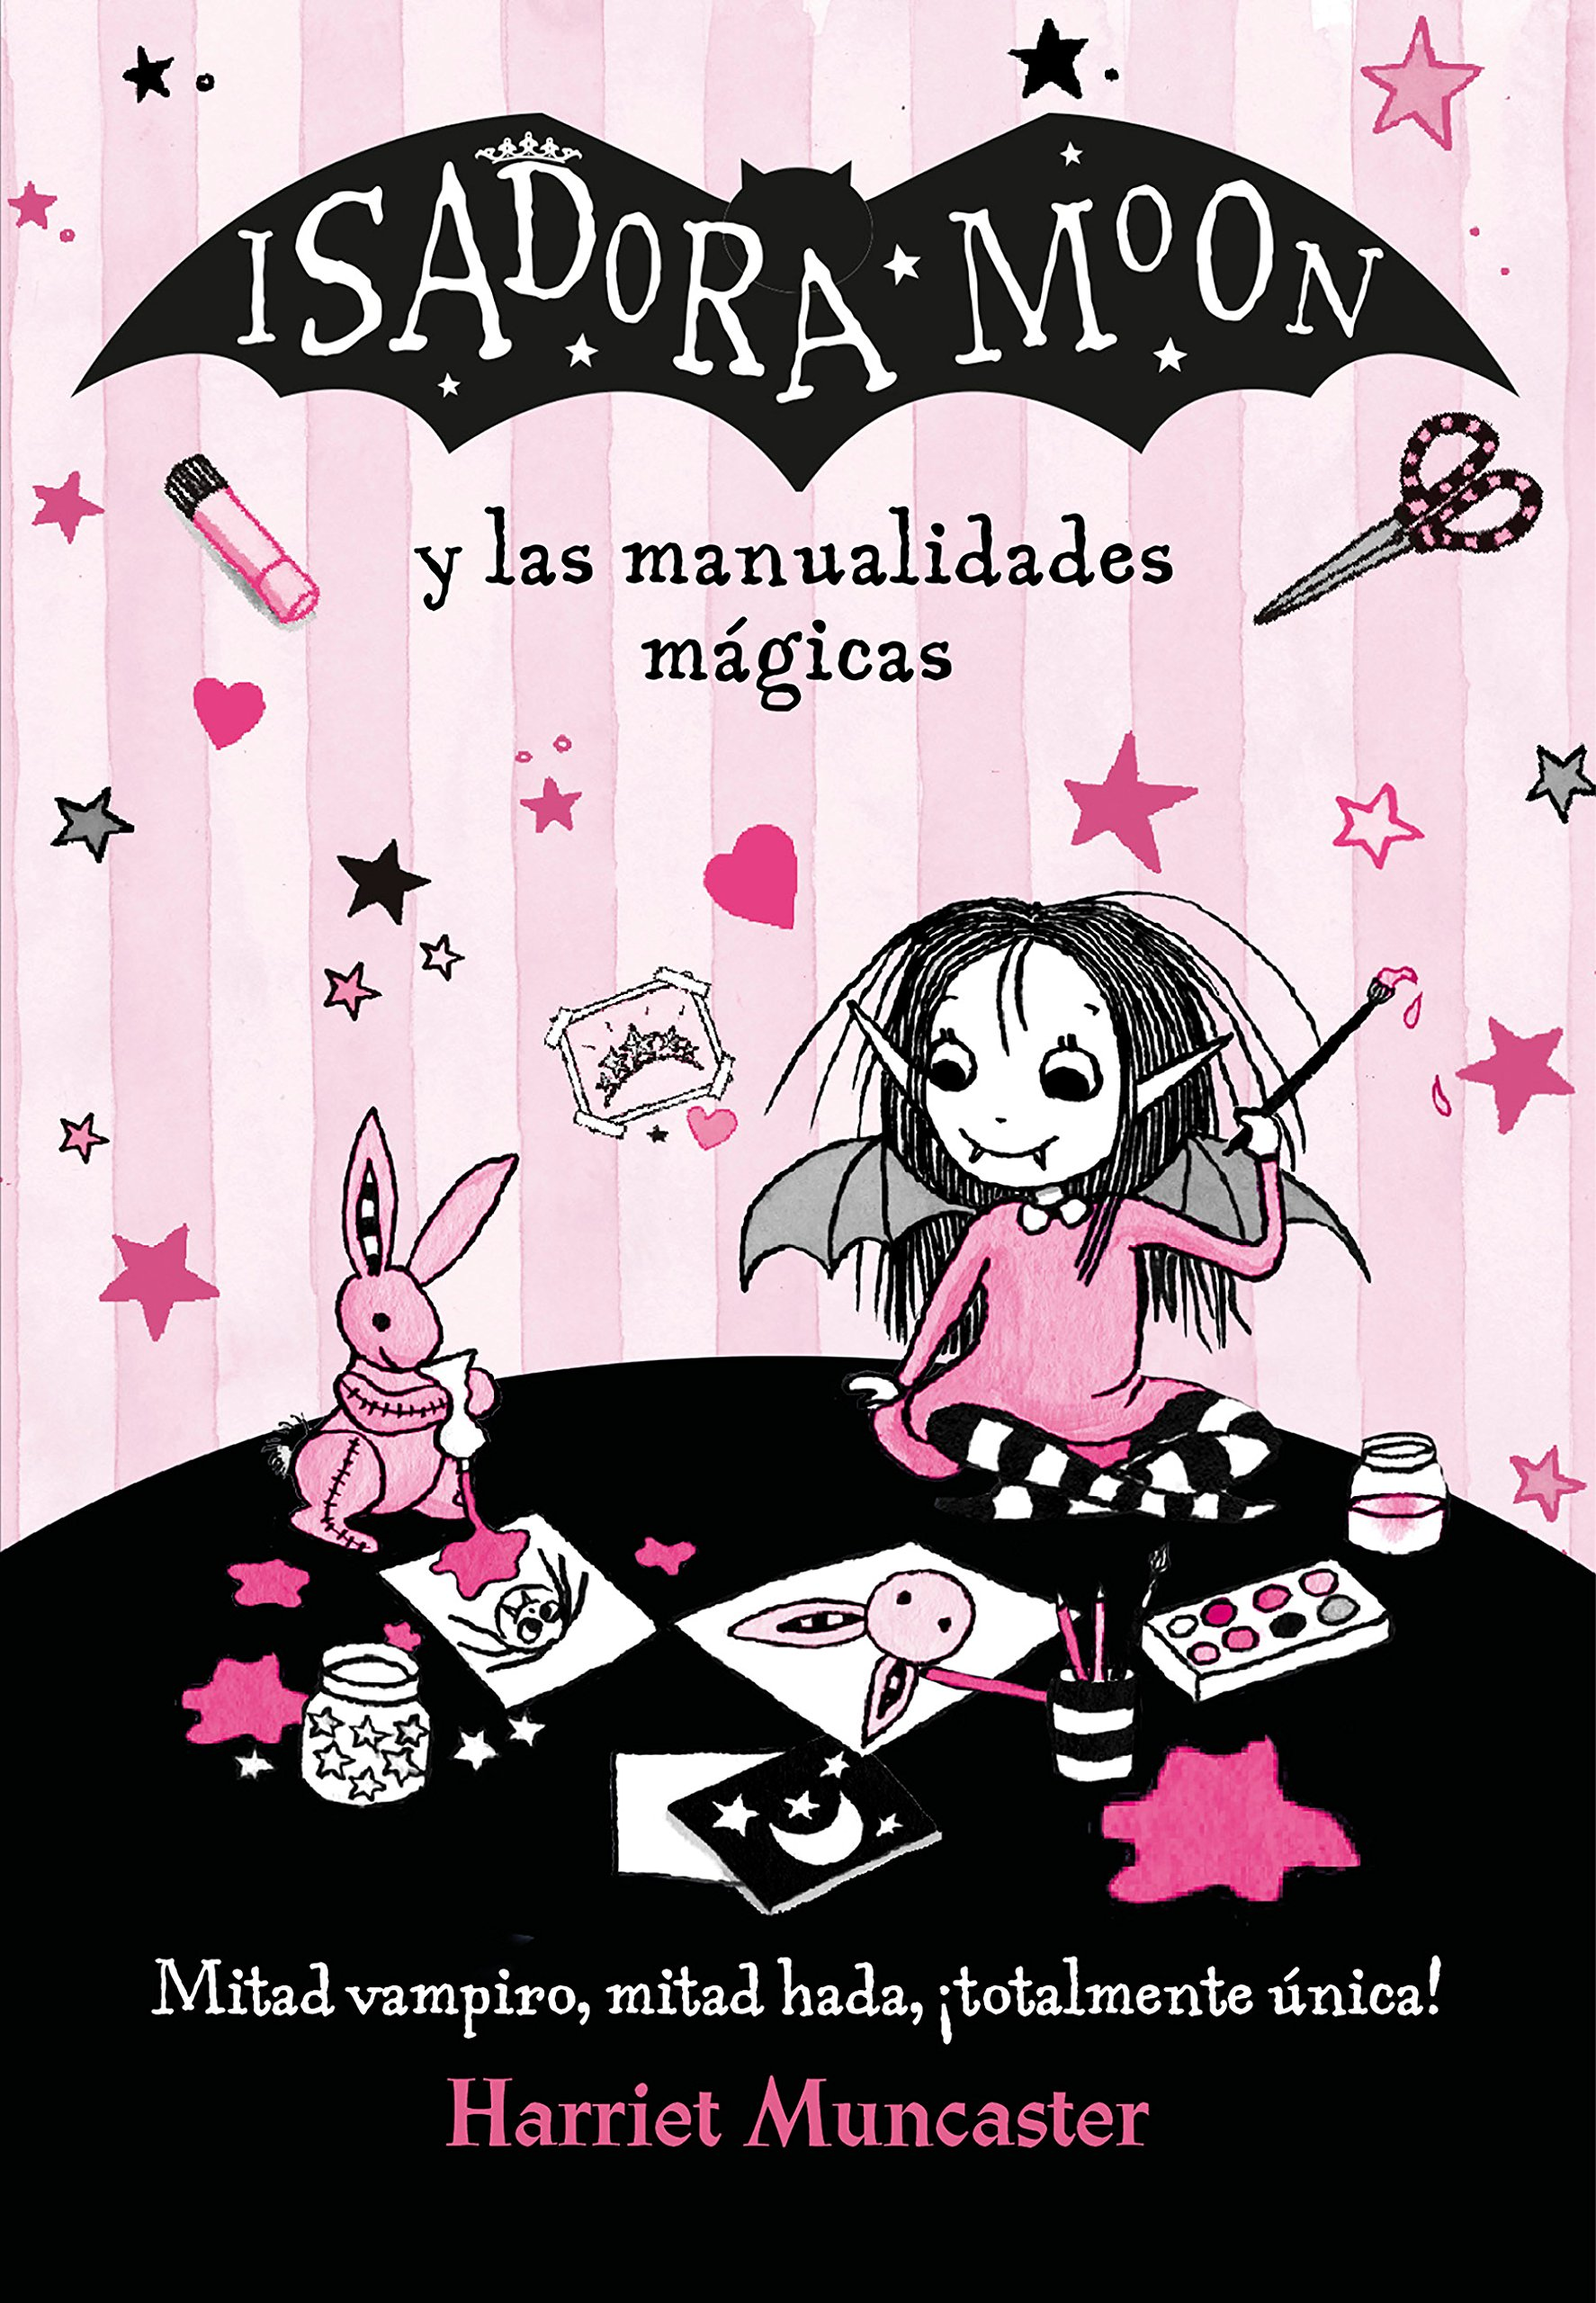 Isadora Moon y las manualidades mágicas / Isadora Moon and Magical Arts and  Crafts: Amazon.de: Harriet Muncaster: Fremdsprachige Bücher